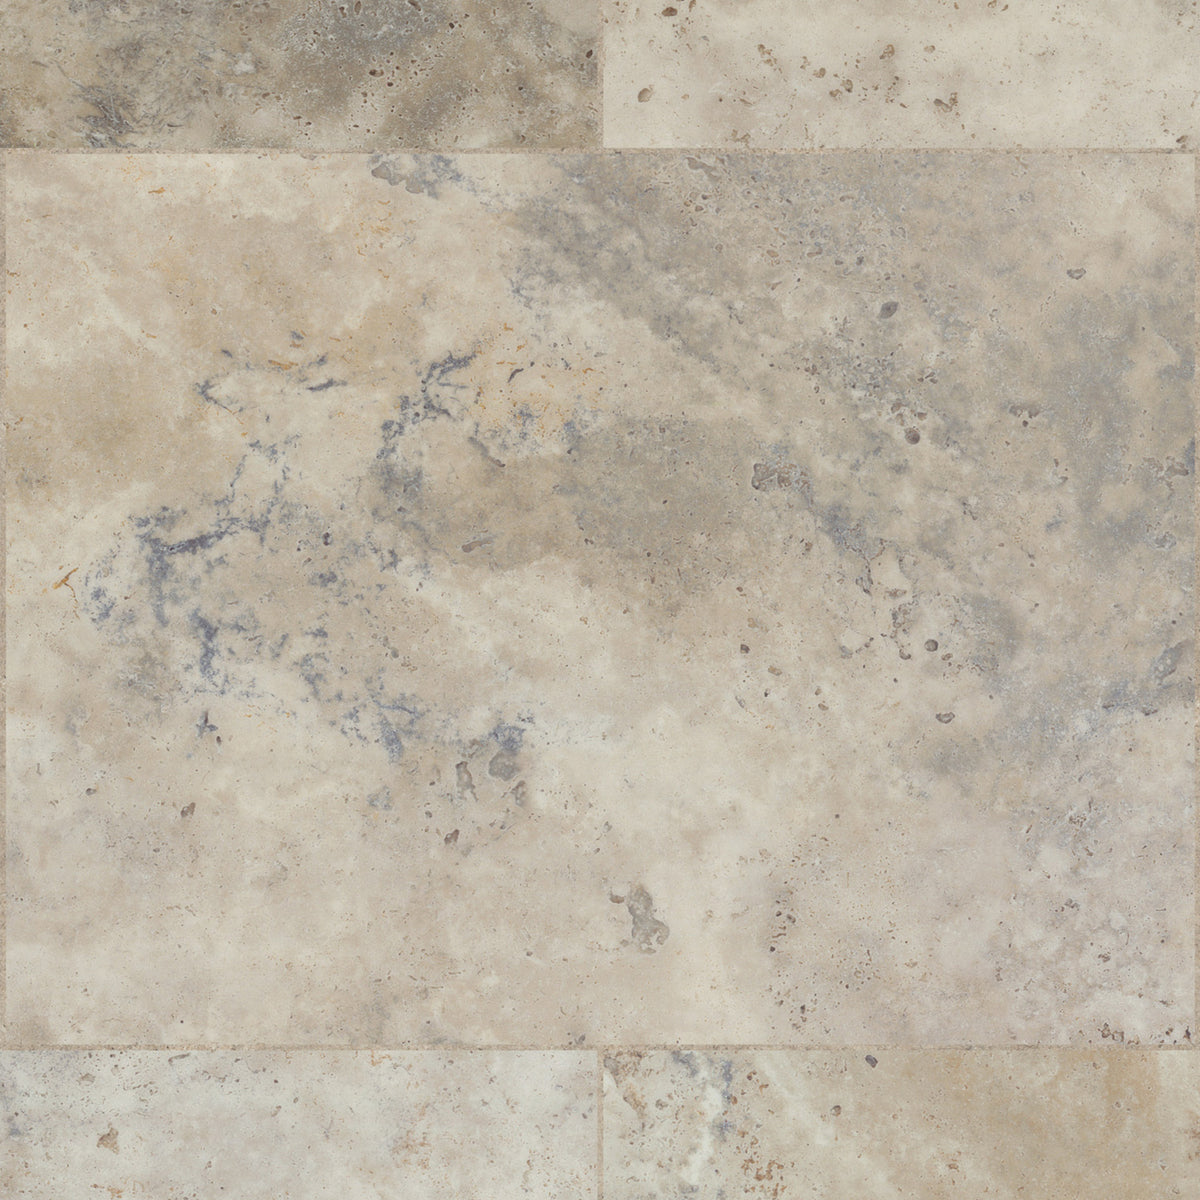 Karndean Art Select 18 in. x 24 in. Tile - Gallatin